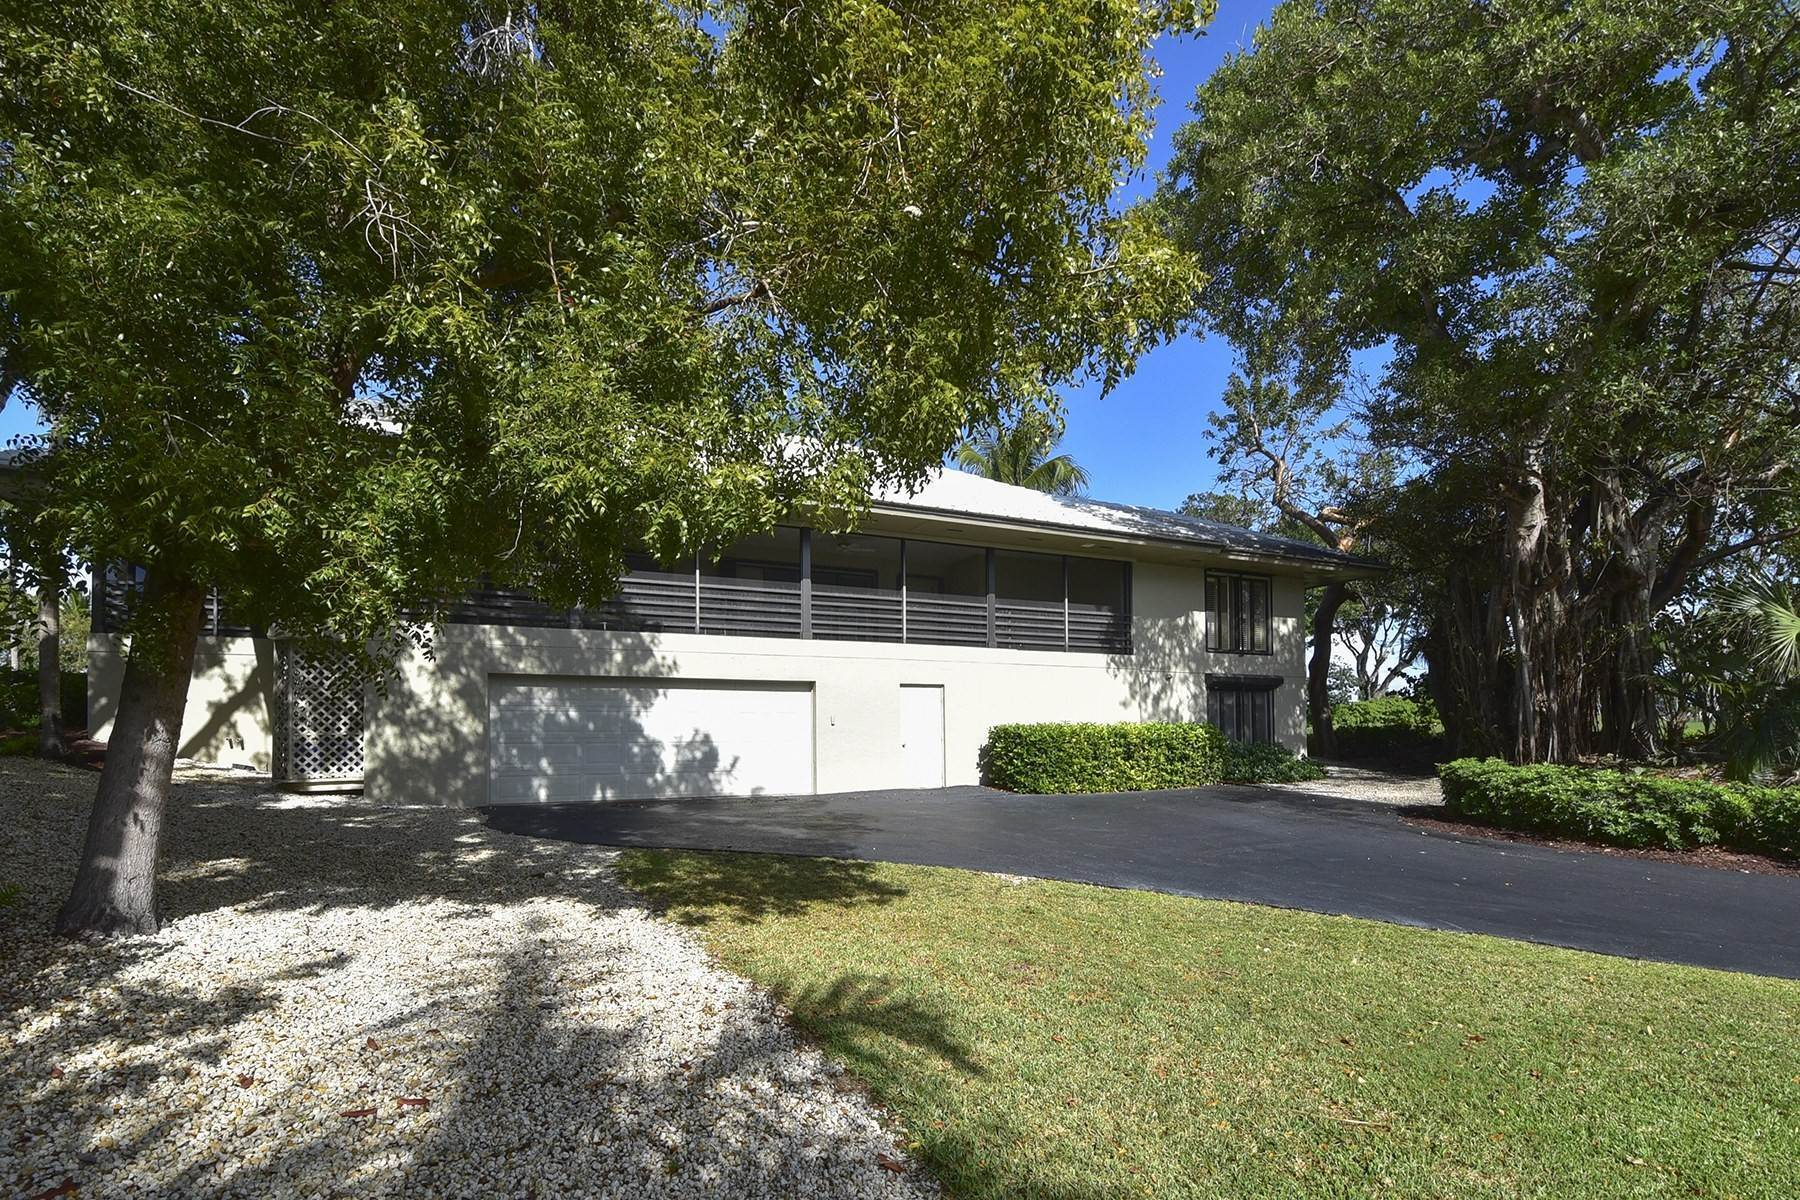 19. Property for Sale at Pumpkin Key - Private Island, Key Largo, FL Pumpkin Key - Private Island Key Largo, Florida 33037 United States